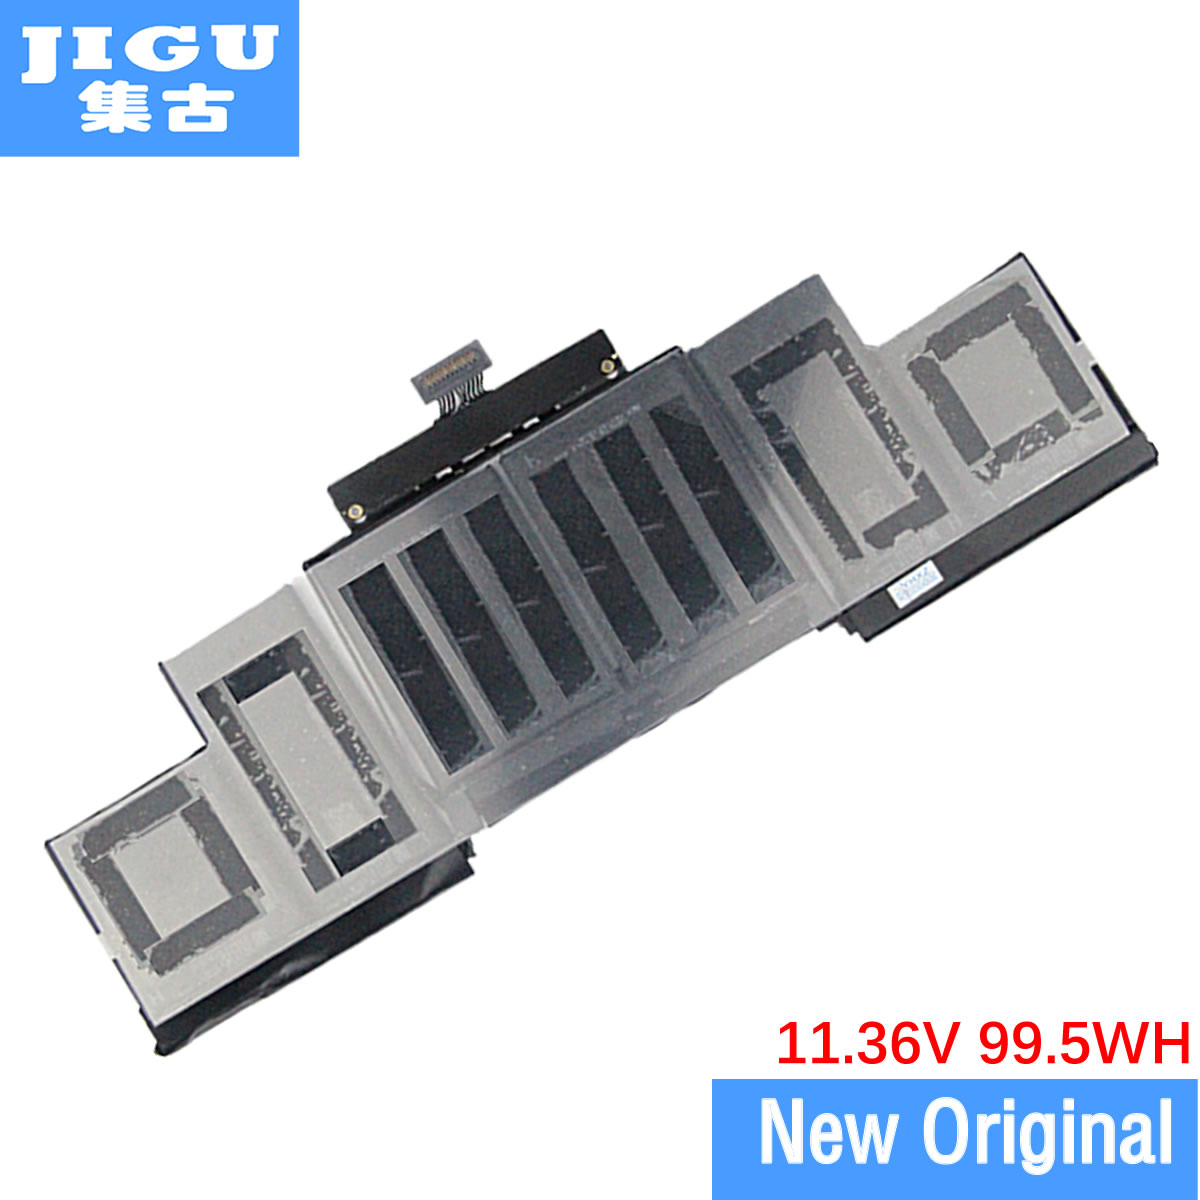 JIGU New A1618 LAPTOP Battery For 2015 Macbook Pro Retina A1398 15'' 15.4 11.36V / 99.5WH Rechargeable Battery Wholesales free shipping a1417 original laptop battery for apple retina a1398 mc975 mc976 me664 me665 10 95v 95wh